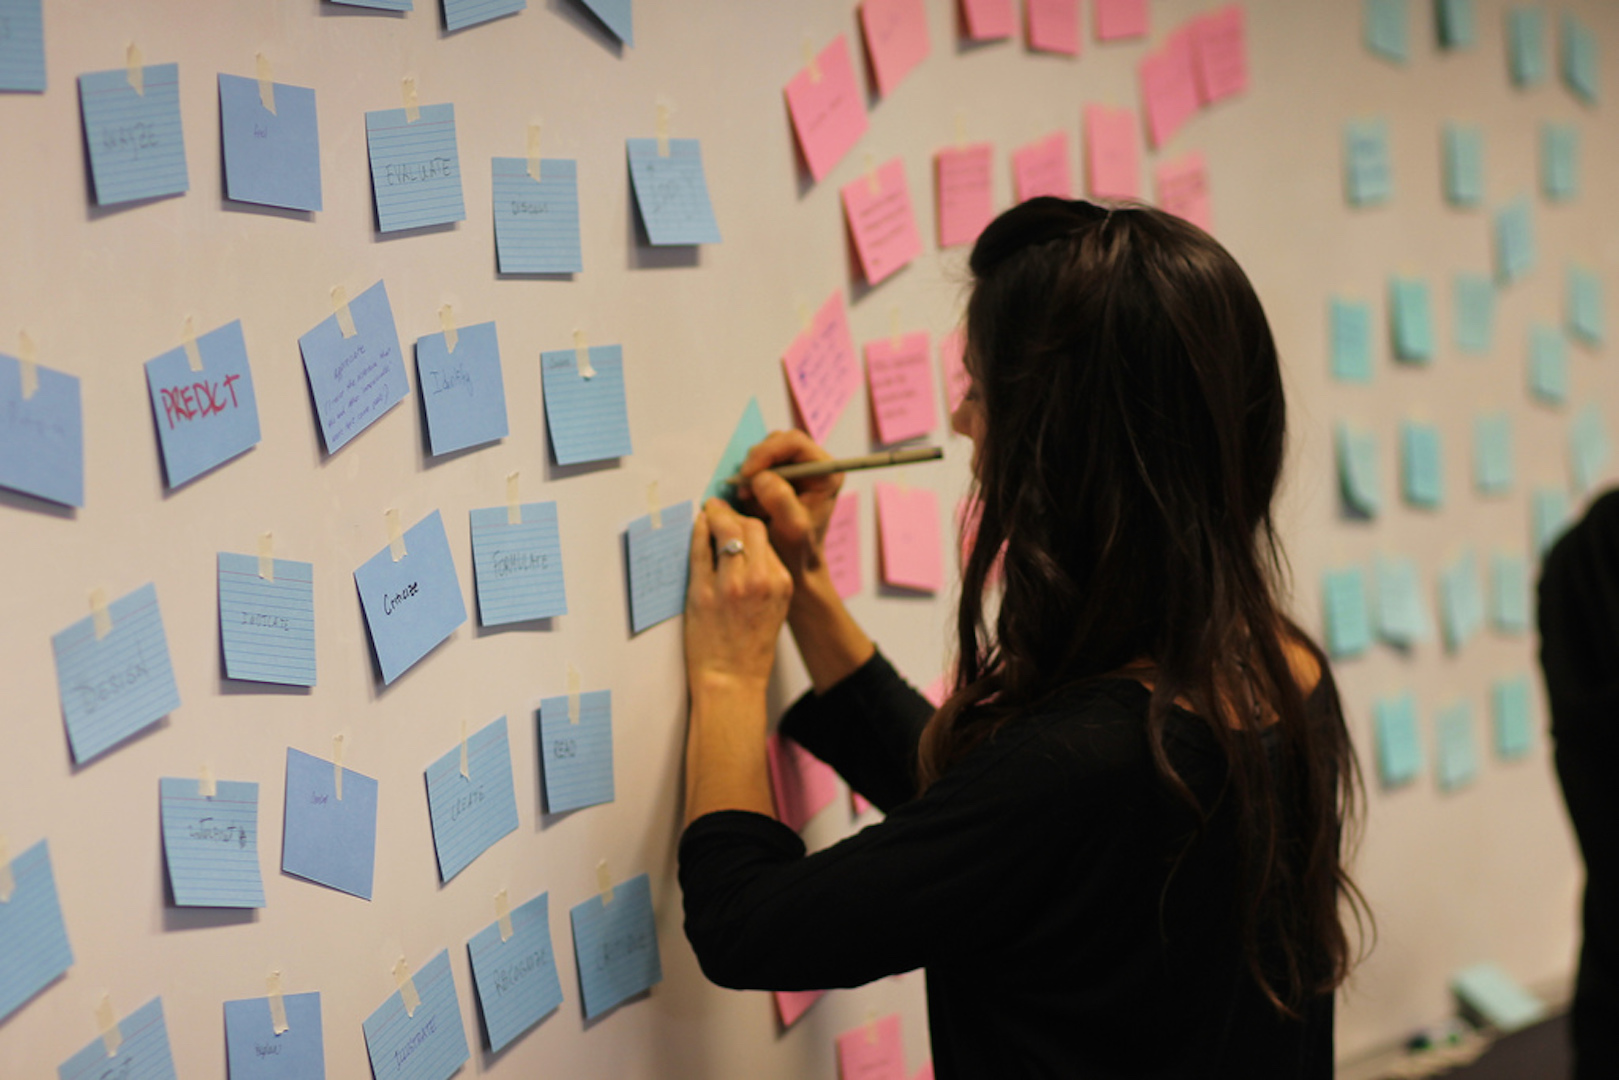 Faculty writing on post-it